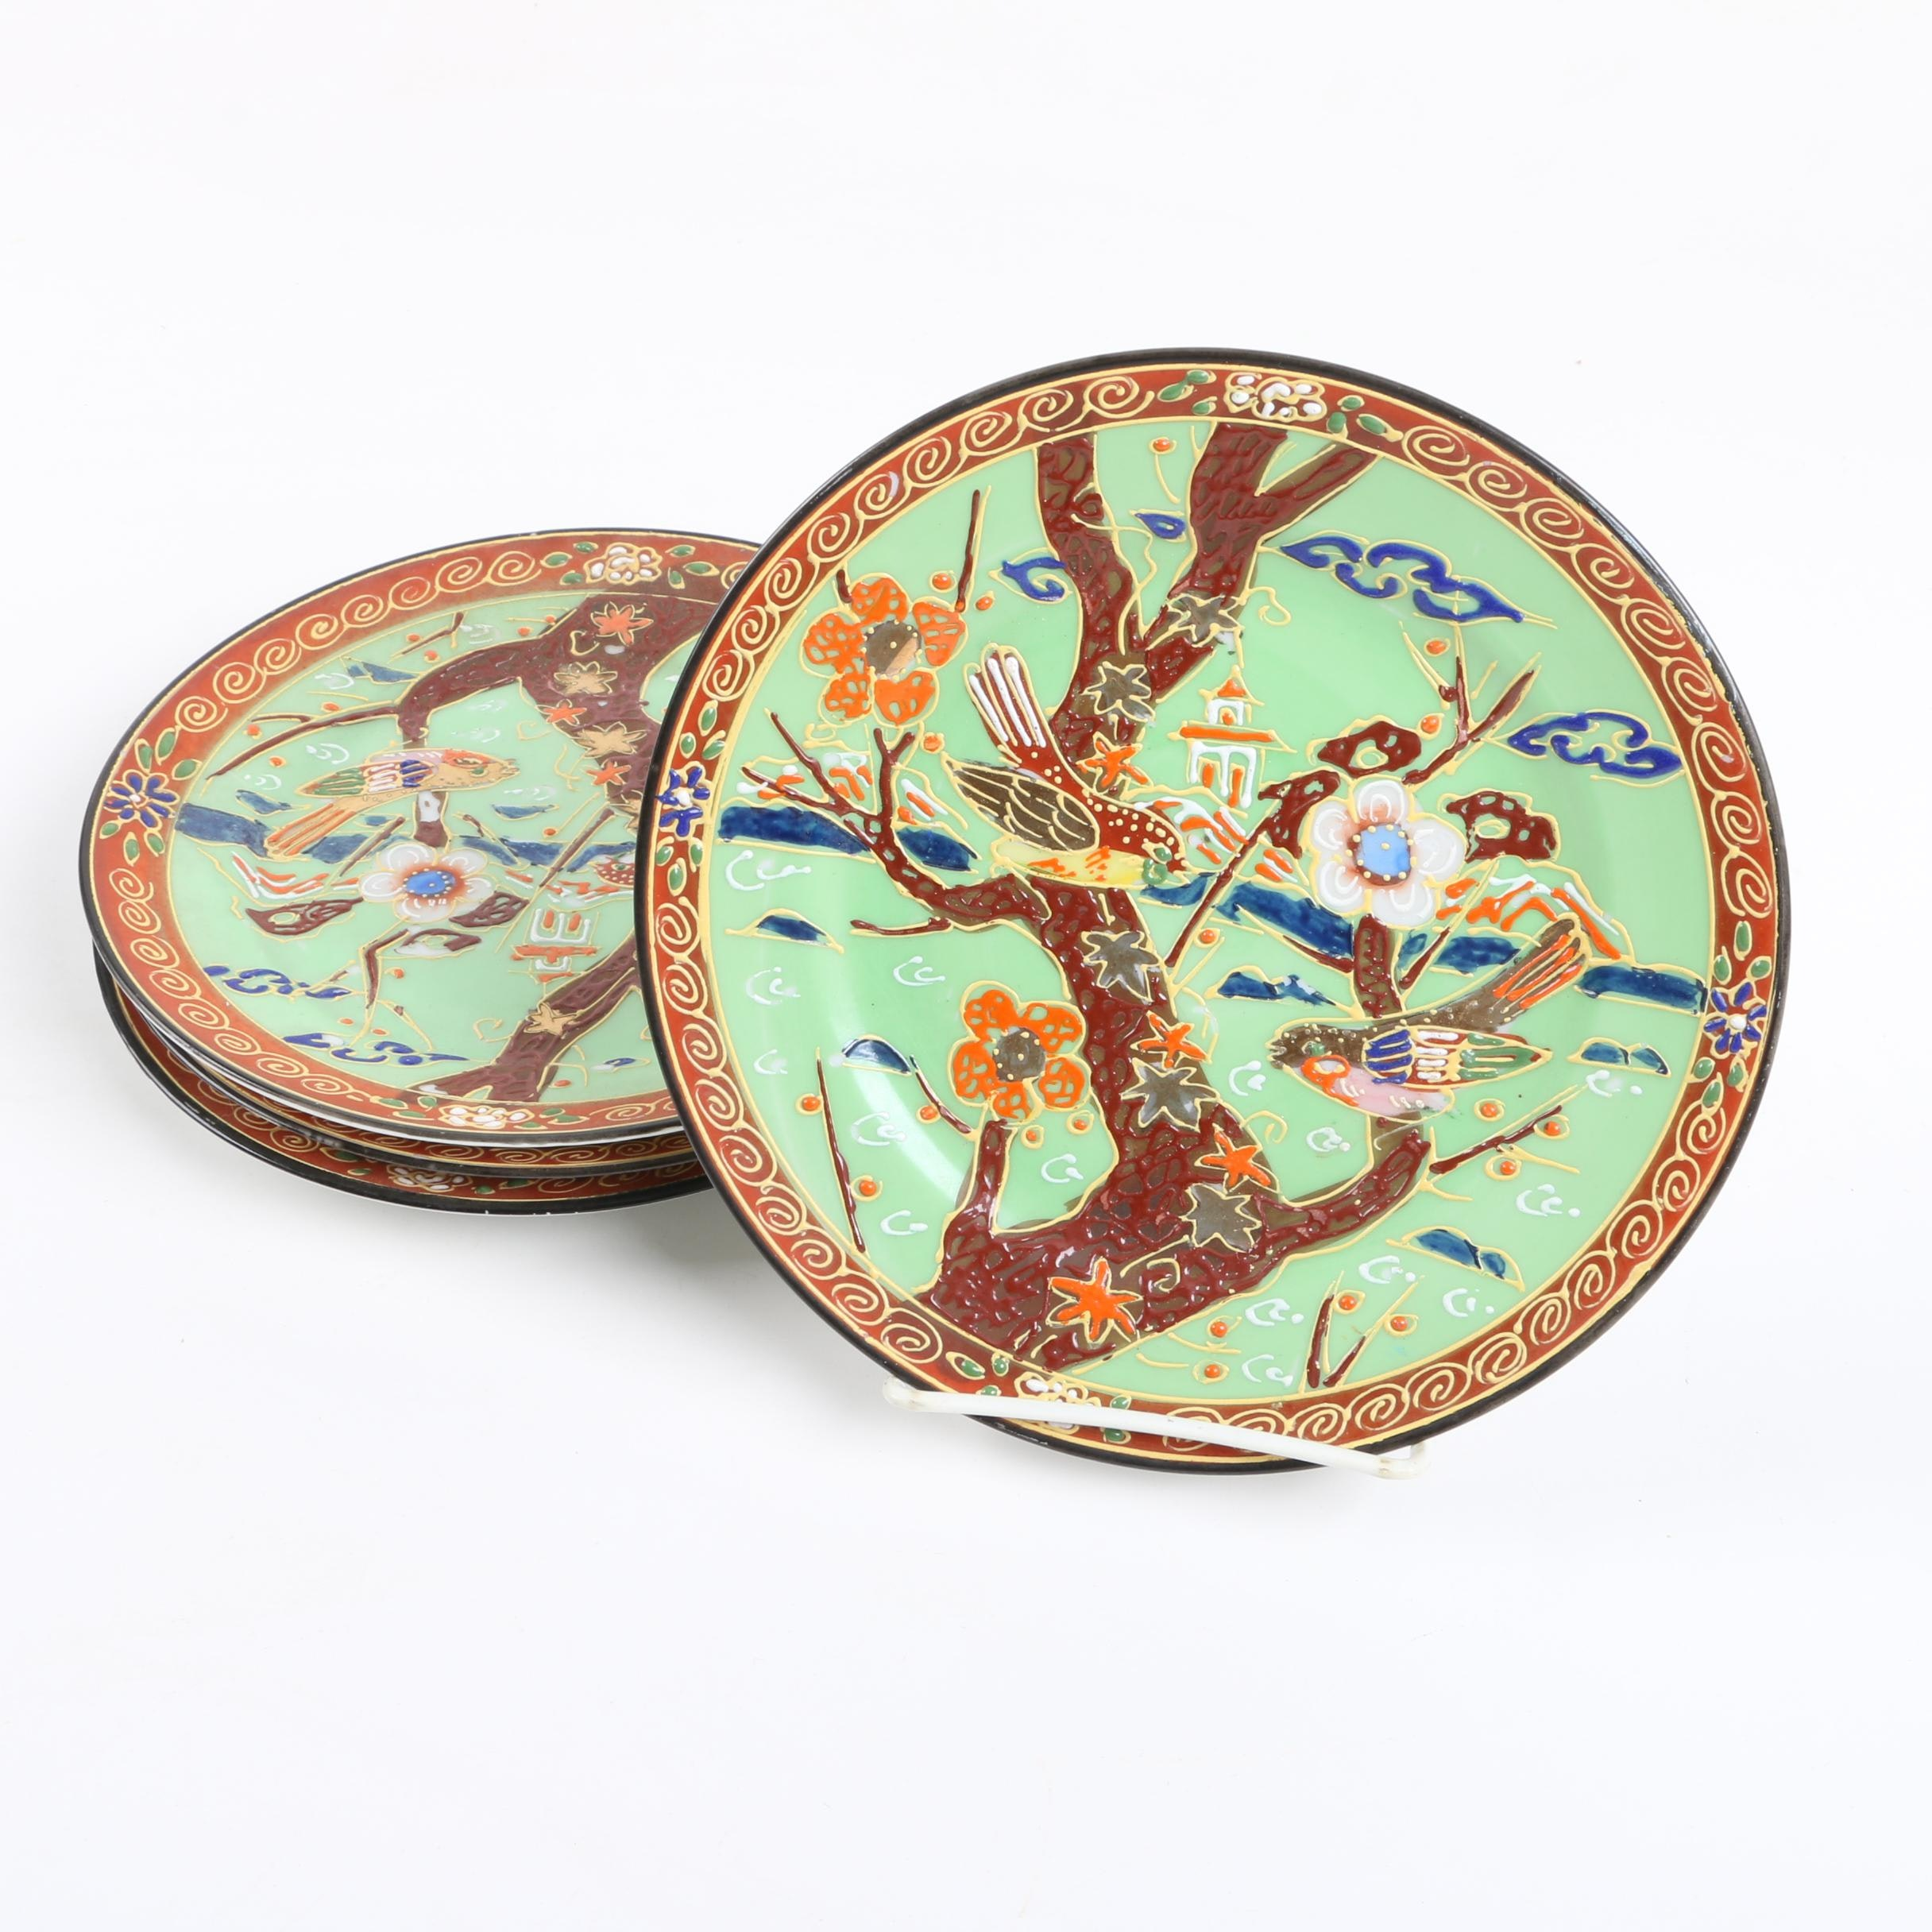 Vintage Takito Hand Painted Japanese Plates 1922-44